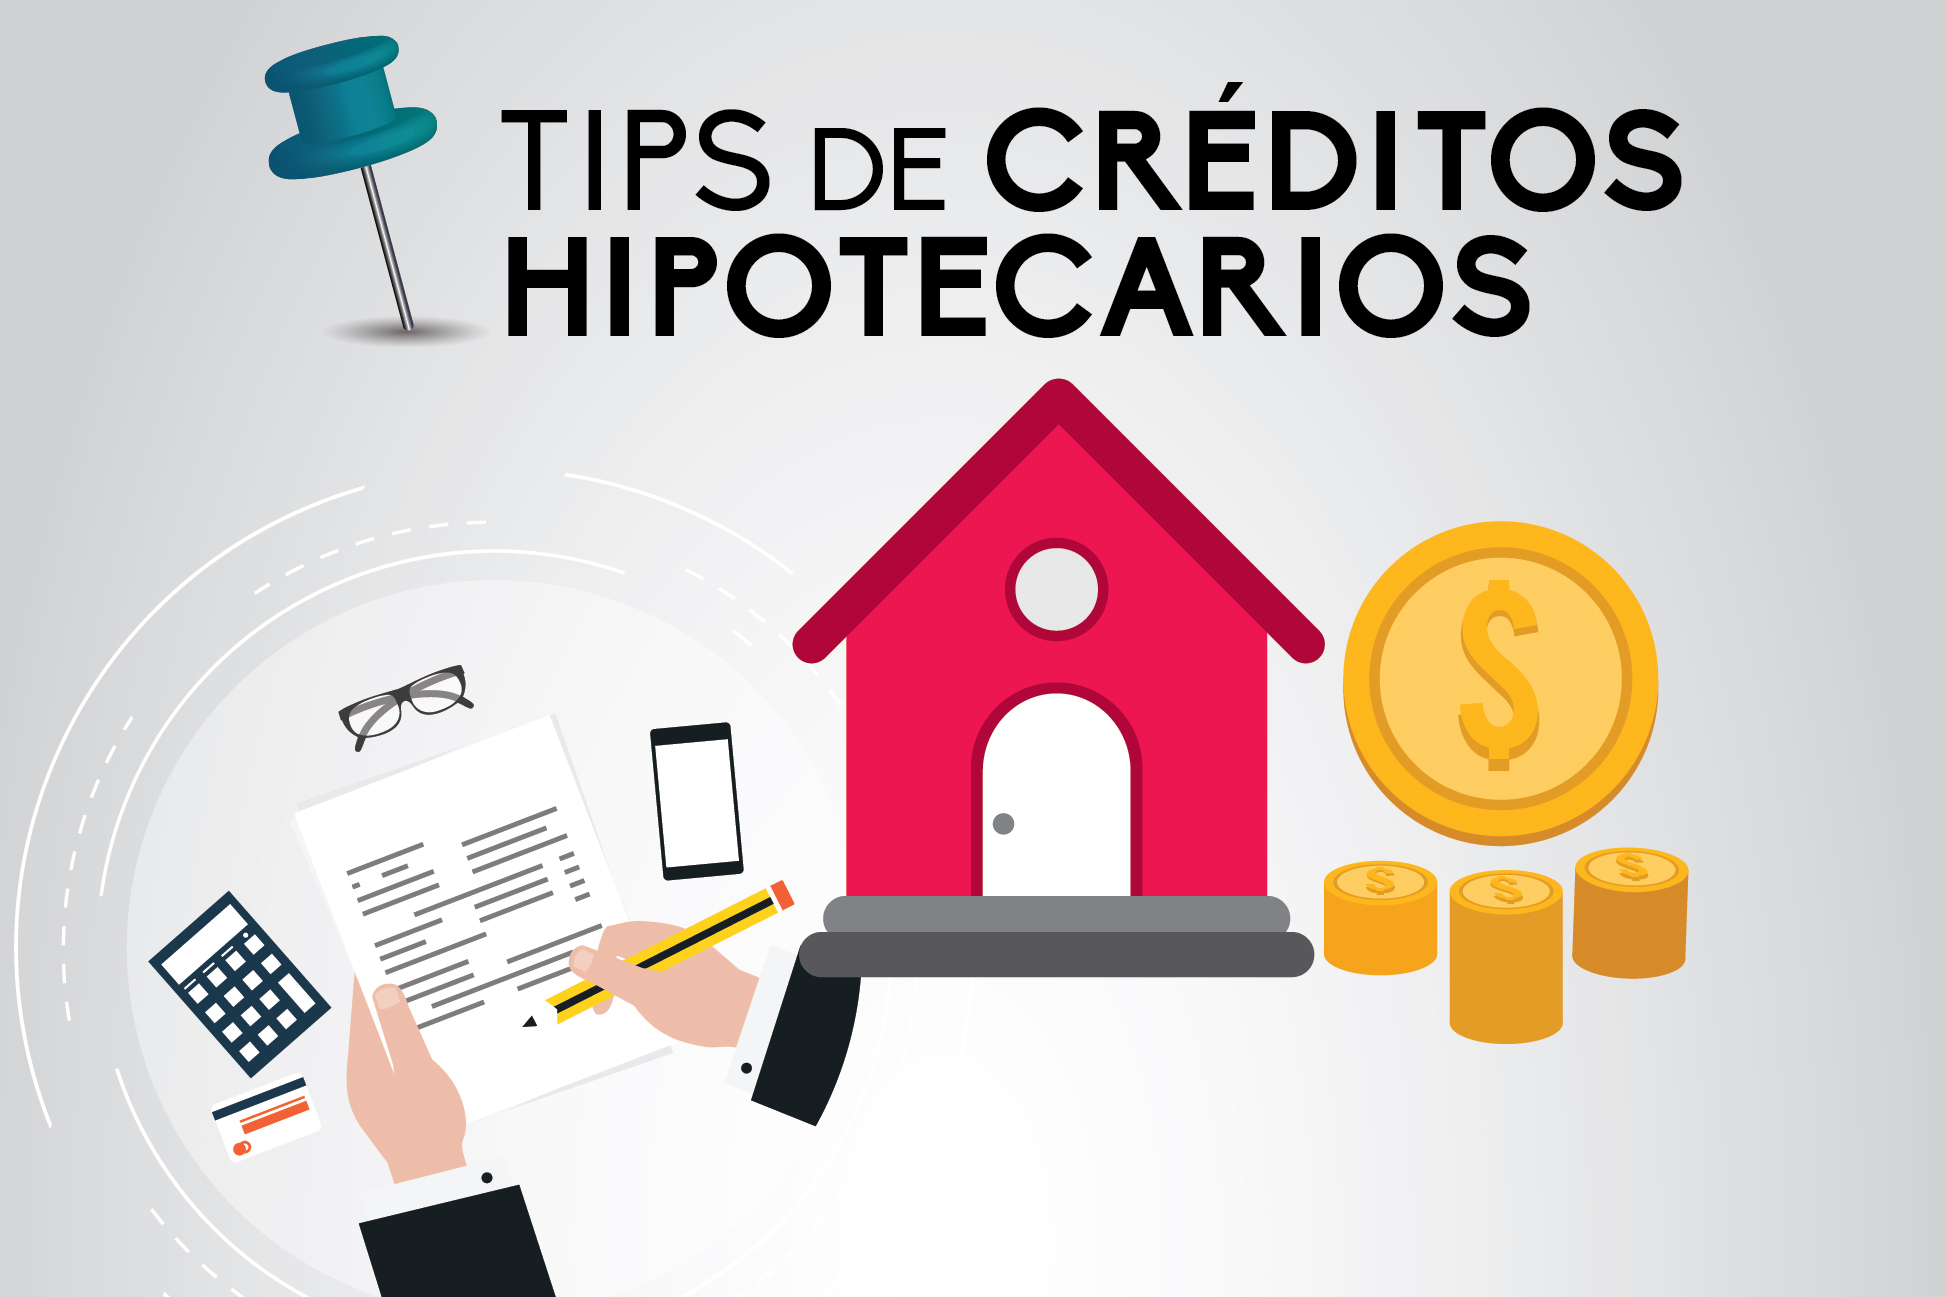 Tips de cr ditos hipotecarios biera biera for Creditos hipotecarios bancor